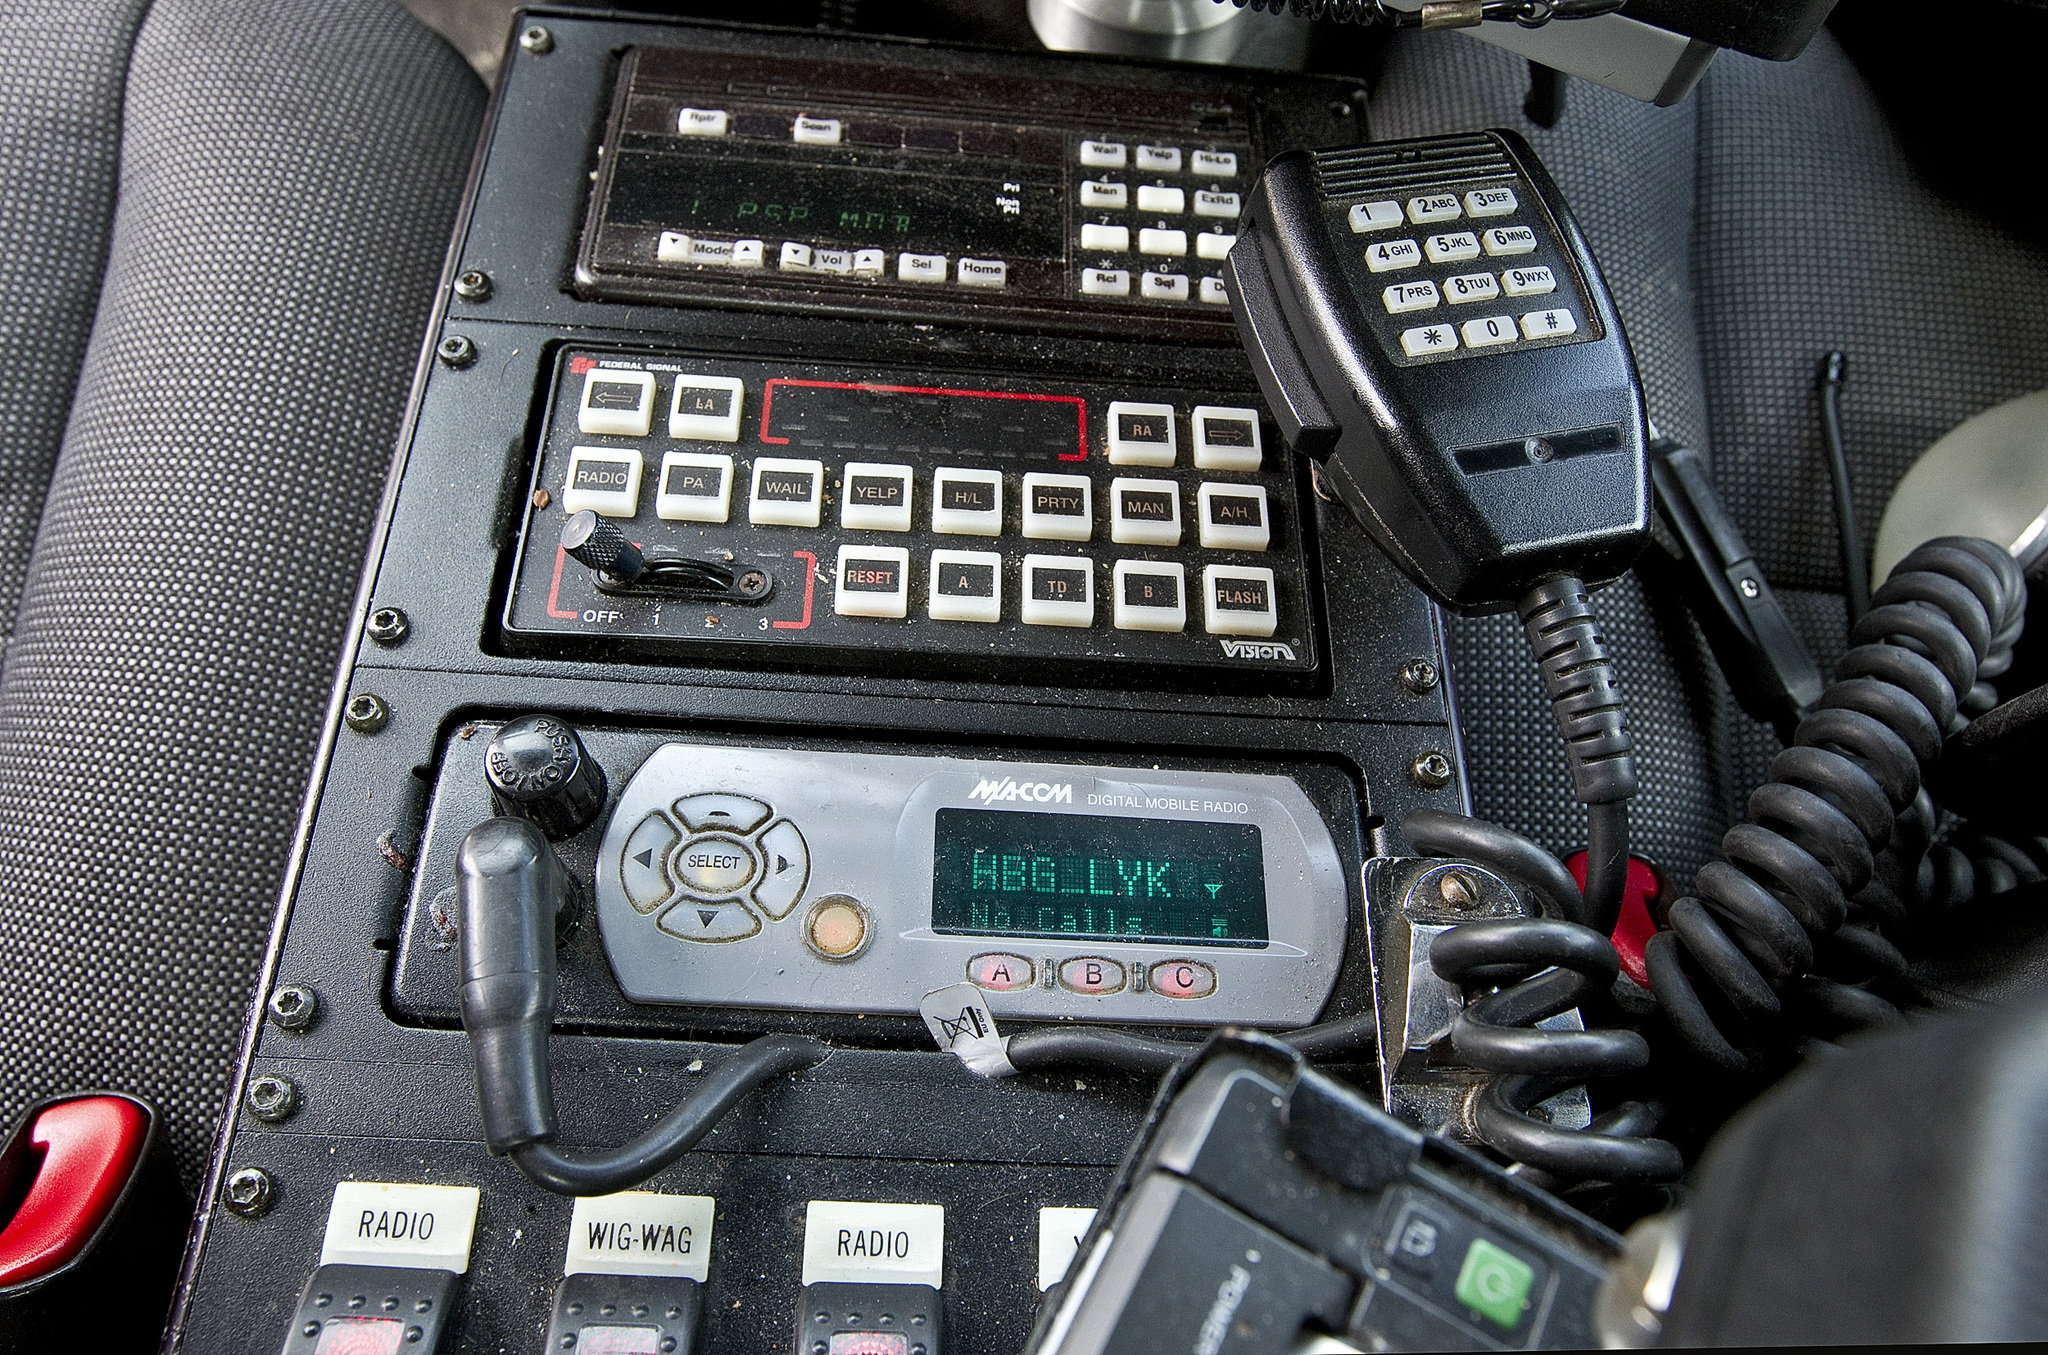 State Police Radio Replacement Dispute Becomes Budget